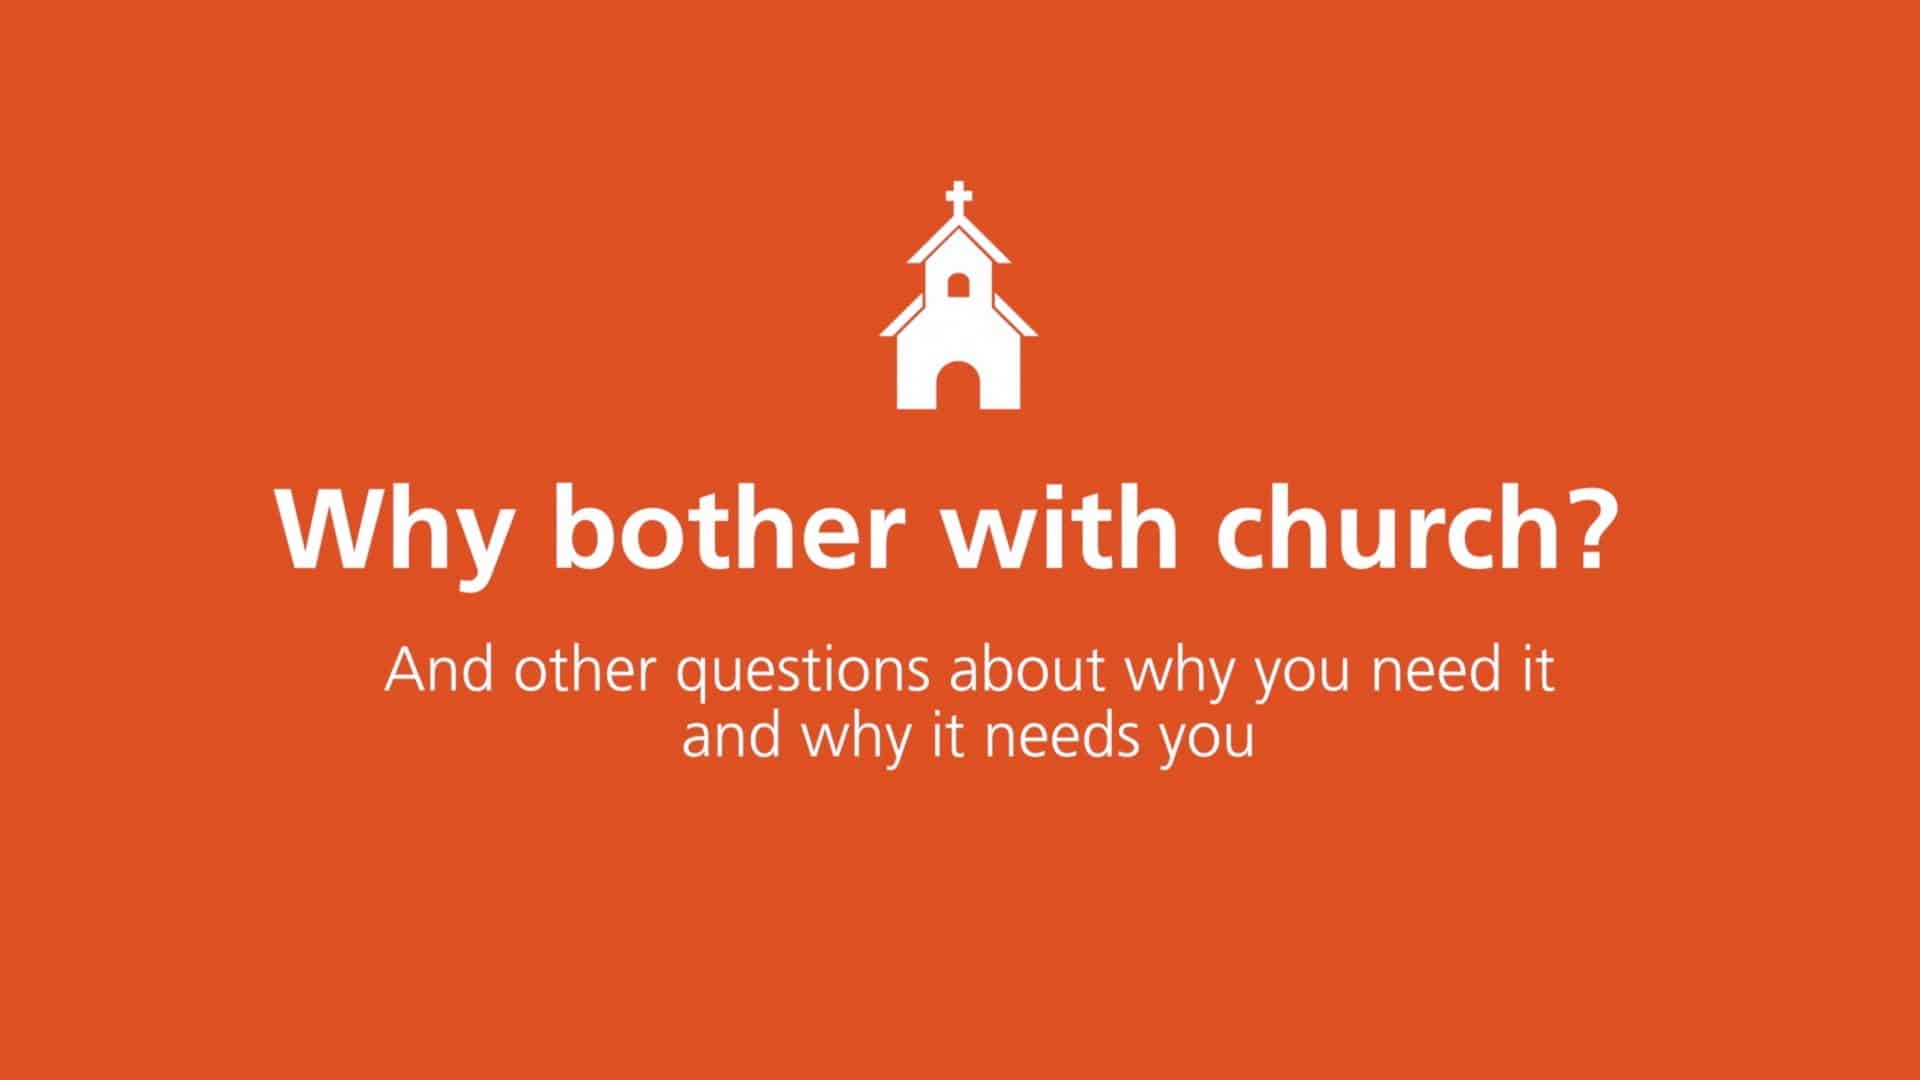 Bother, Why Bother with Church? And Other Questions About Why You Need It and Why It Needs You by Sam Allberry, Servants of Grace